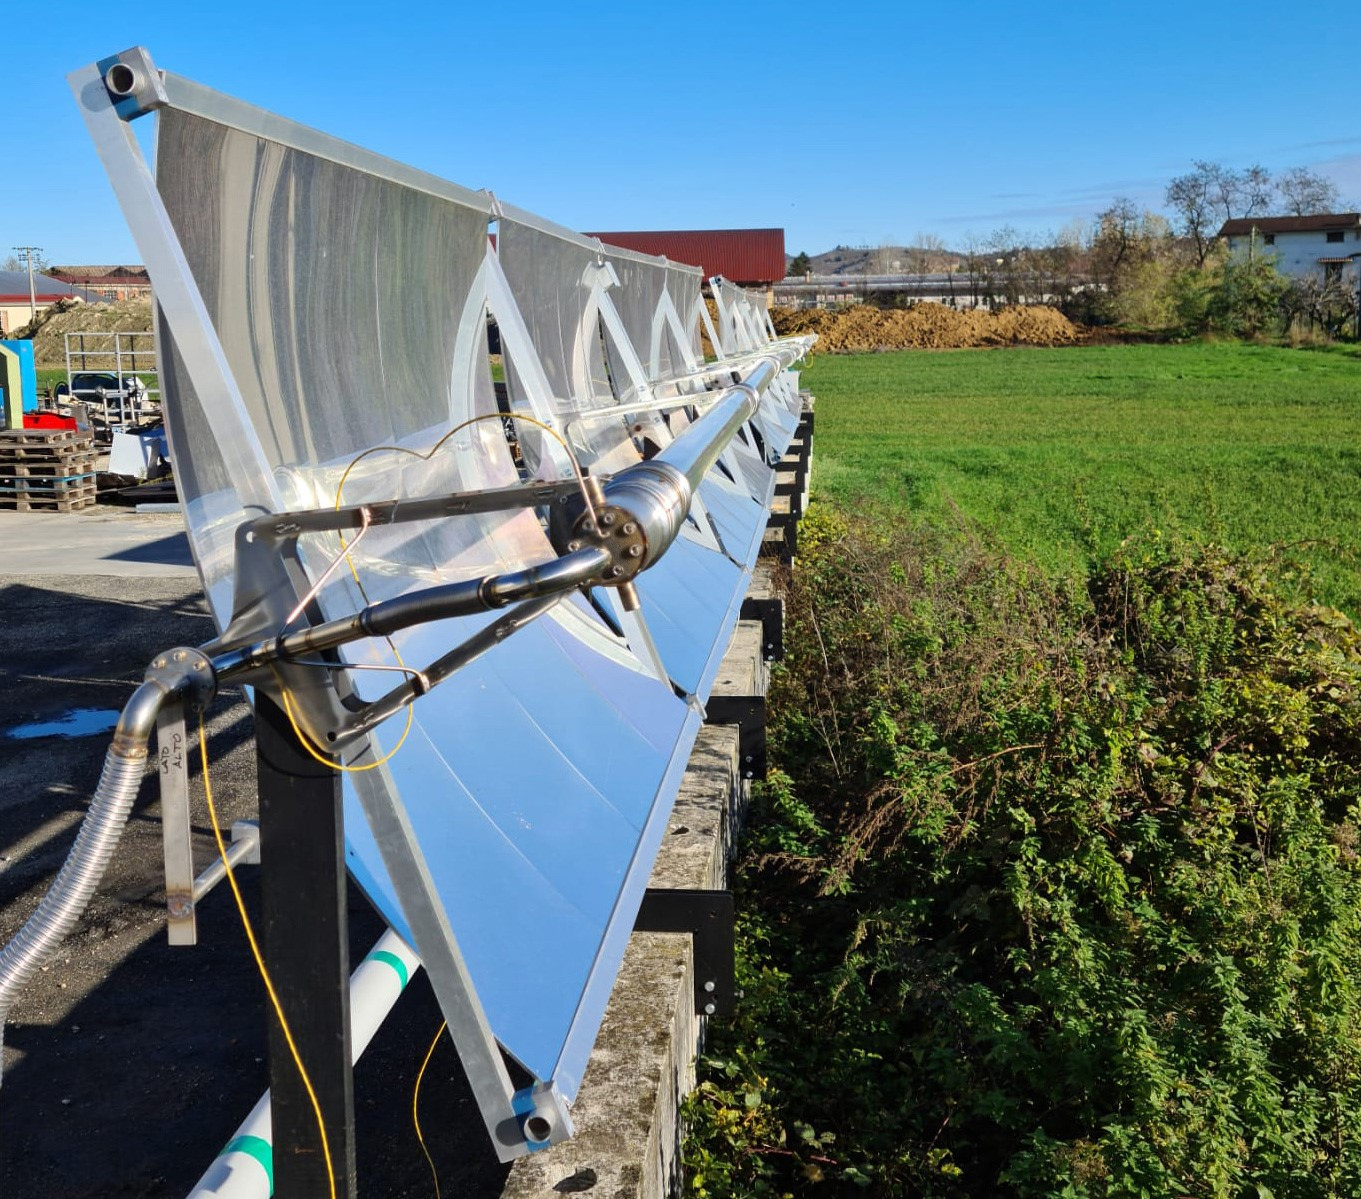 Small solar power plant helps freshwater producers gain access to affordable electricity and heat - Innovation Origins